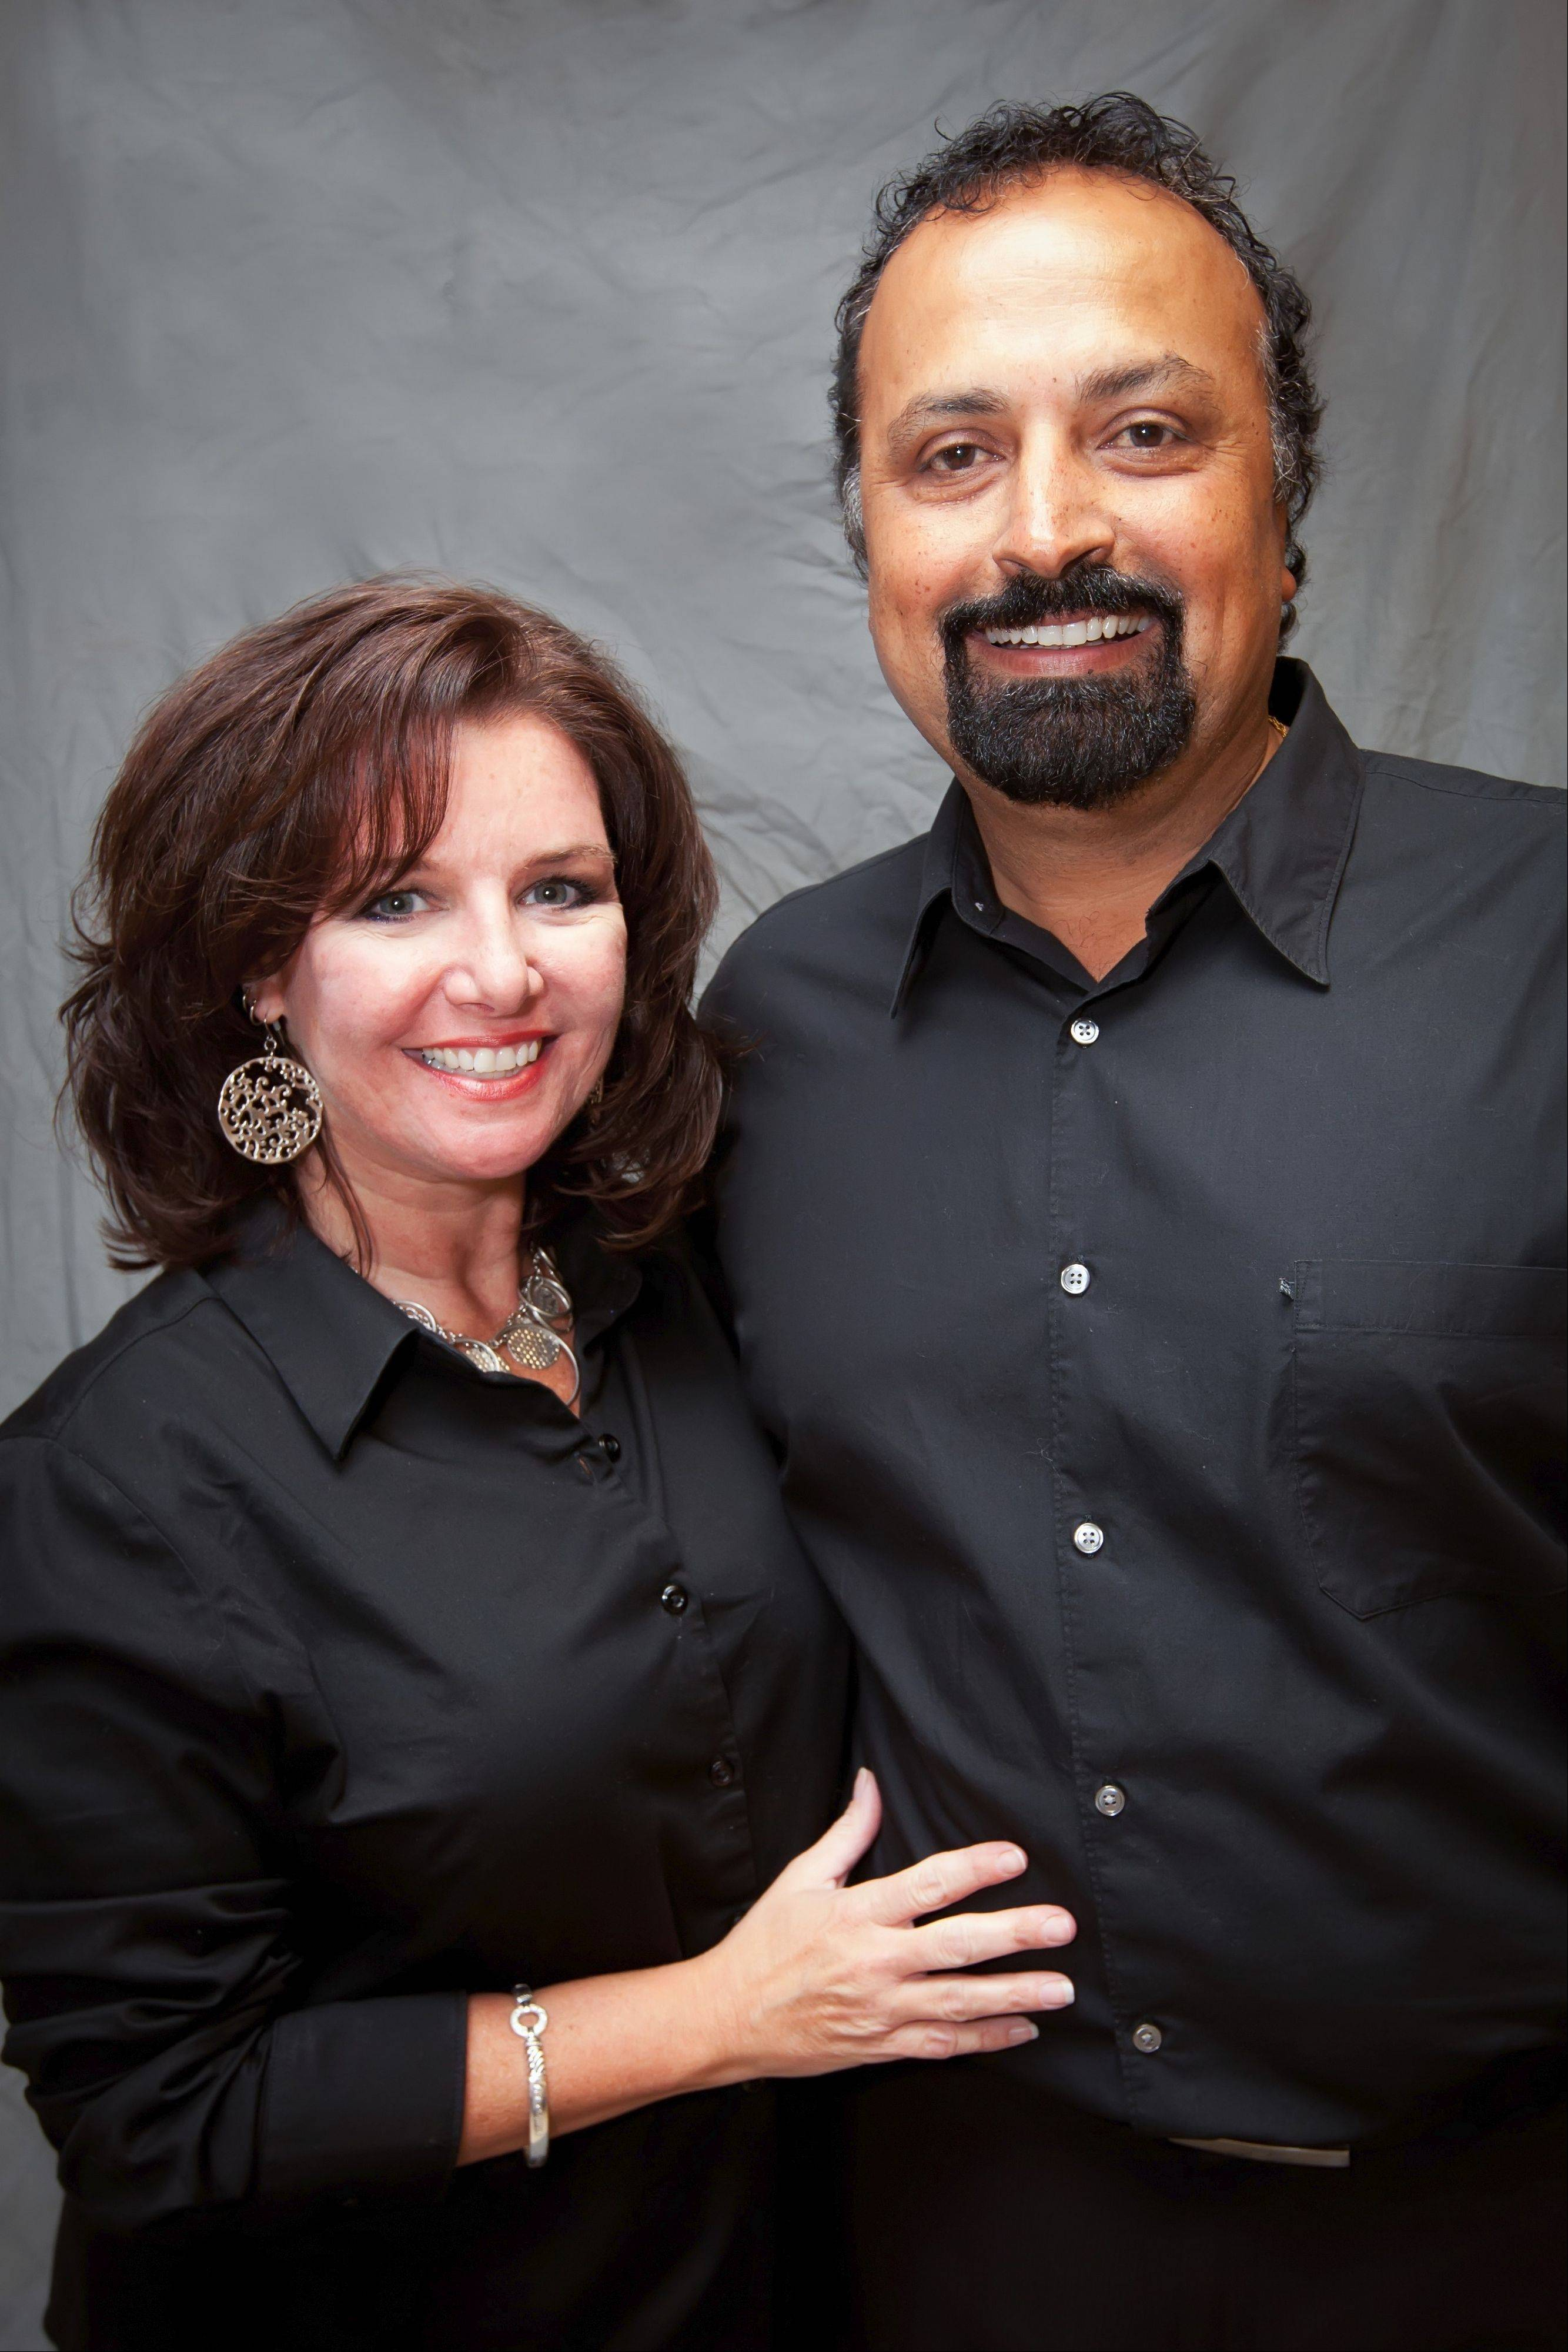 Kathy and Adil Jaffer